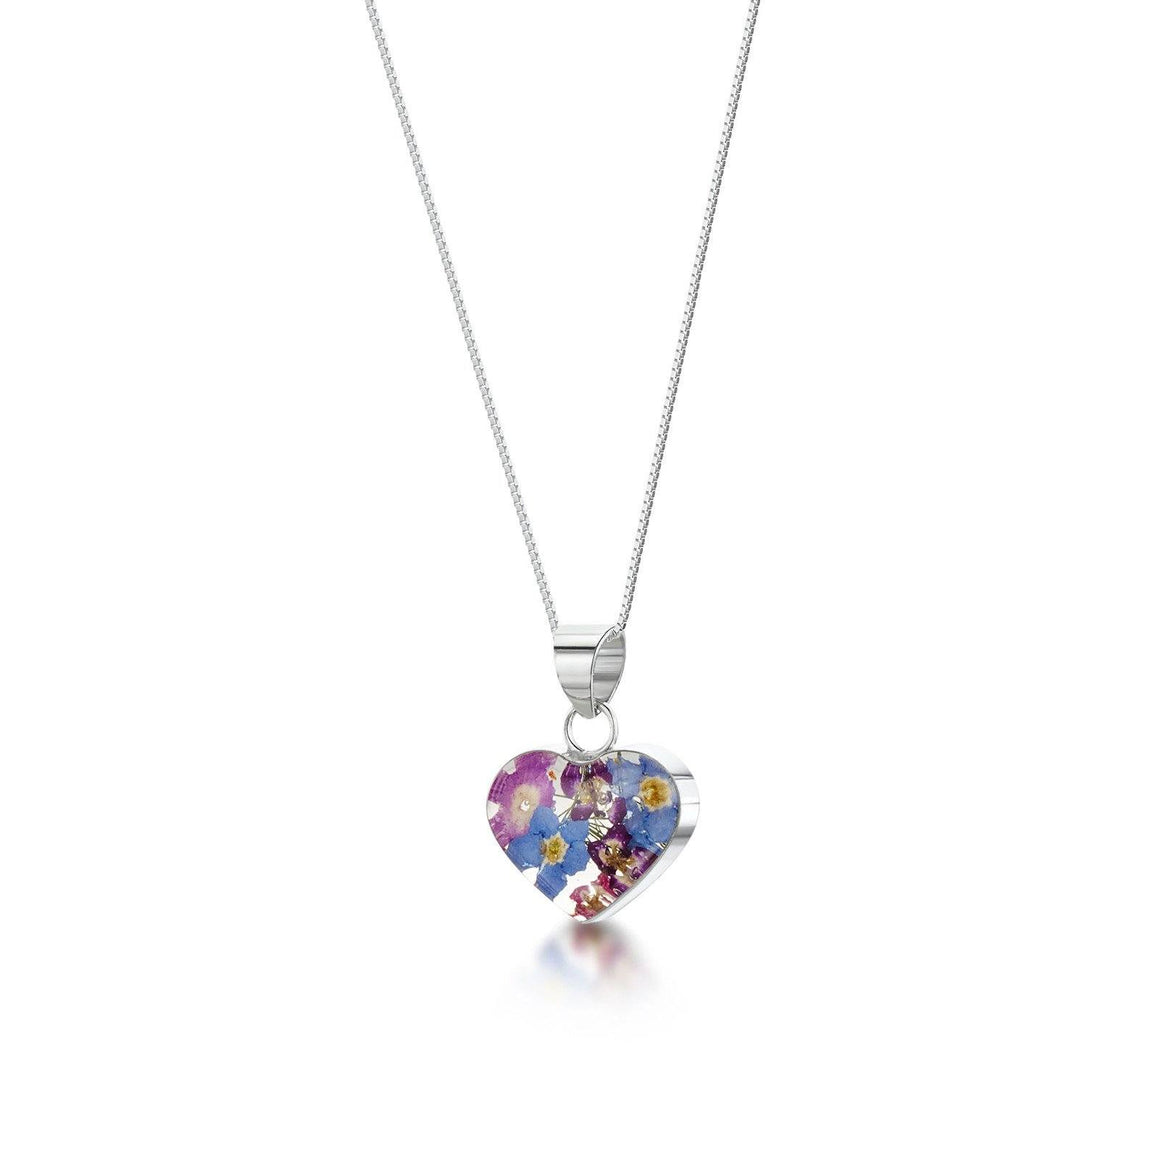 Flower Jewellery Purple Haze Heart Shaped Pendant